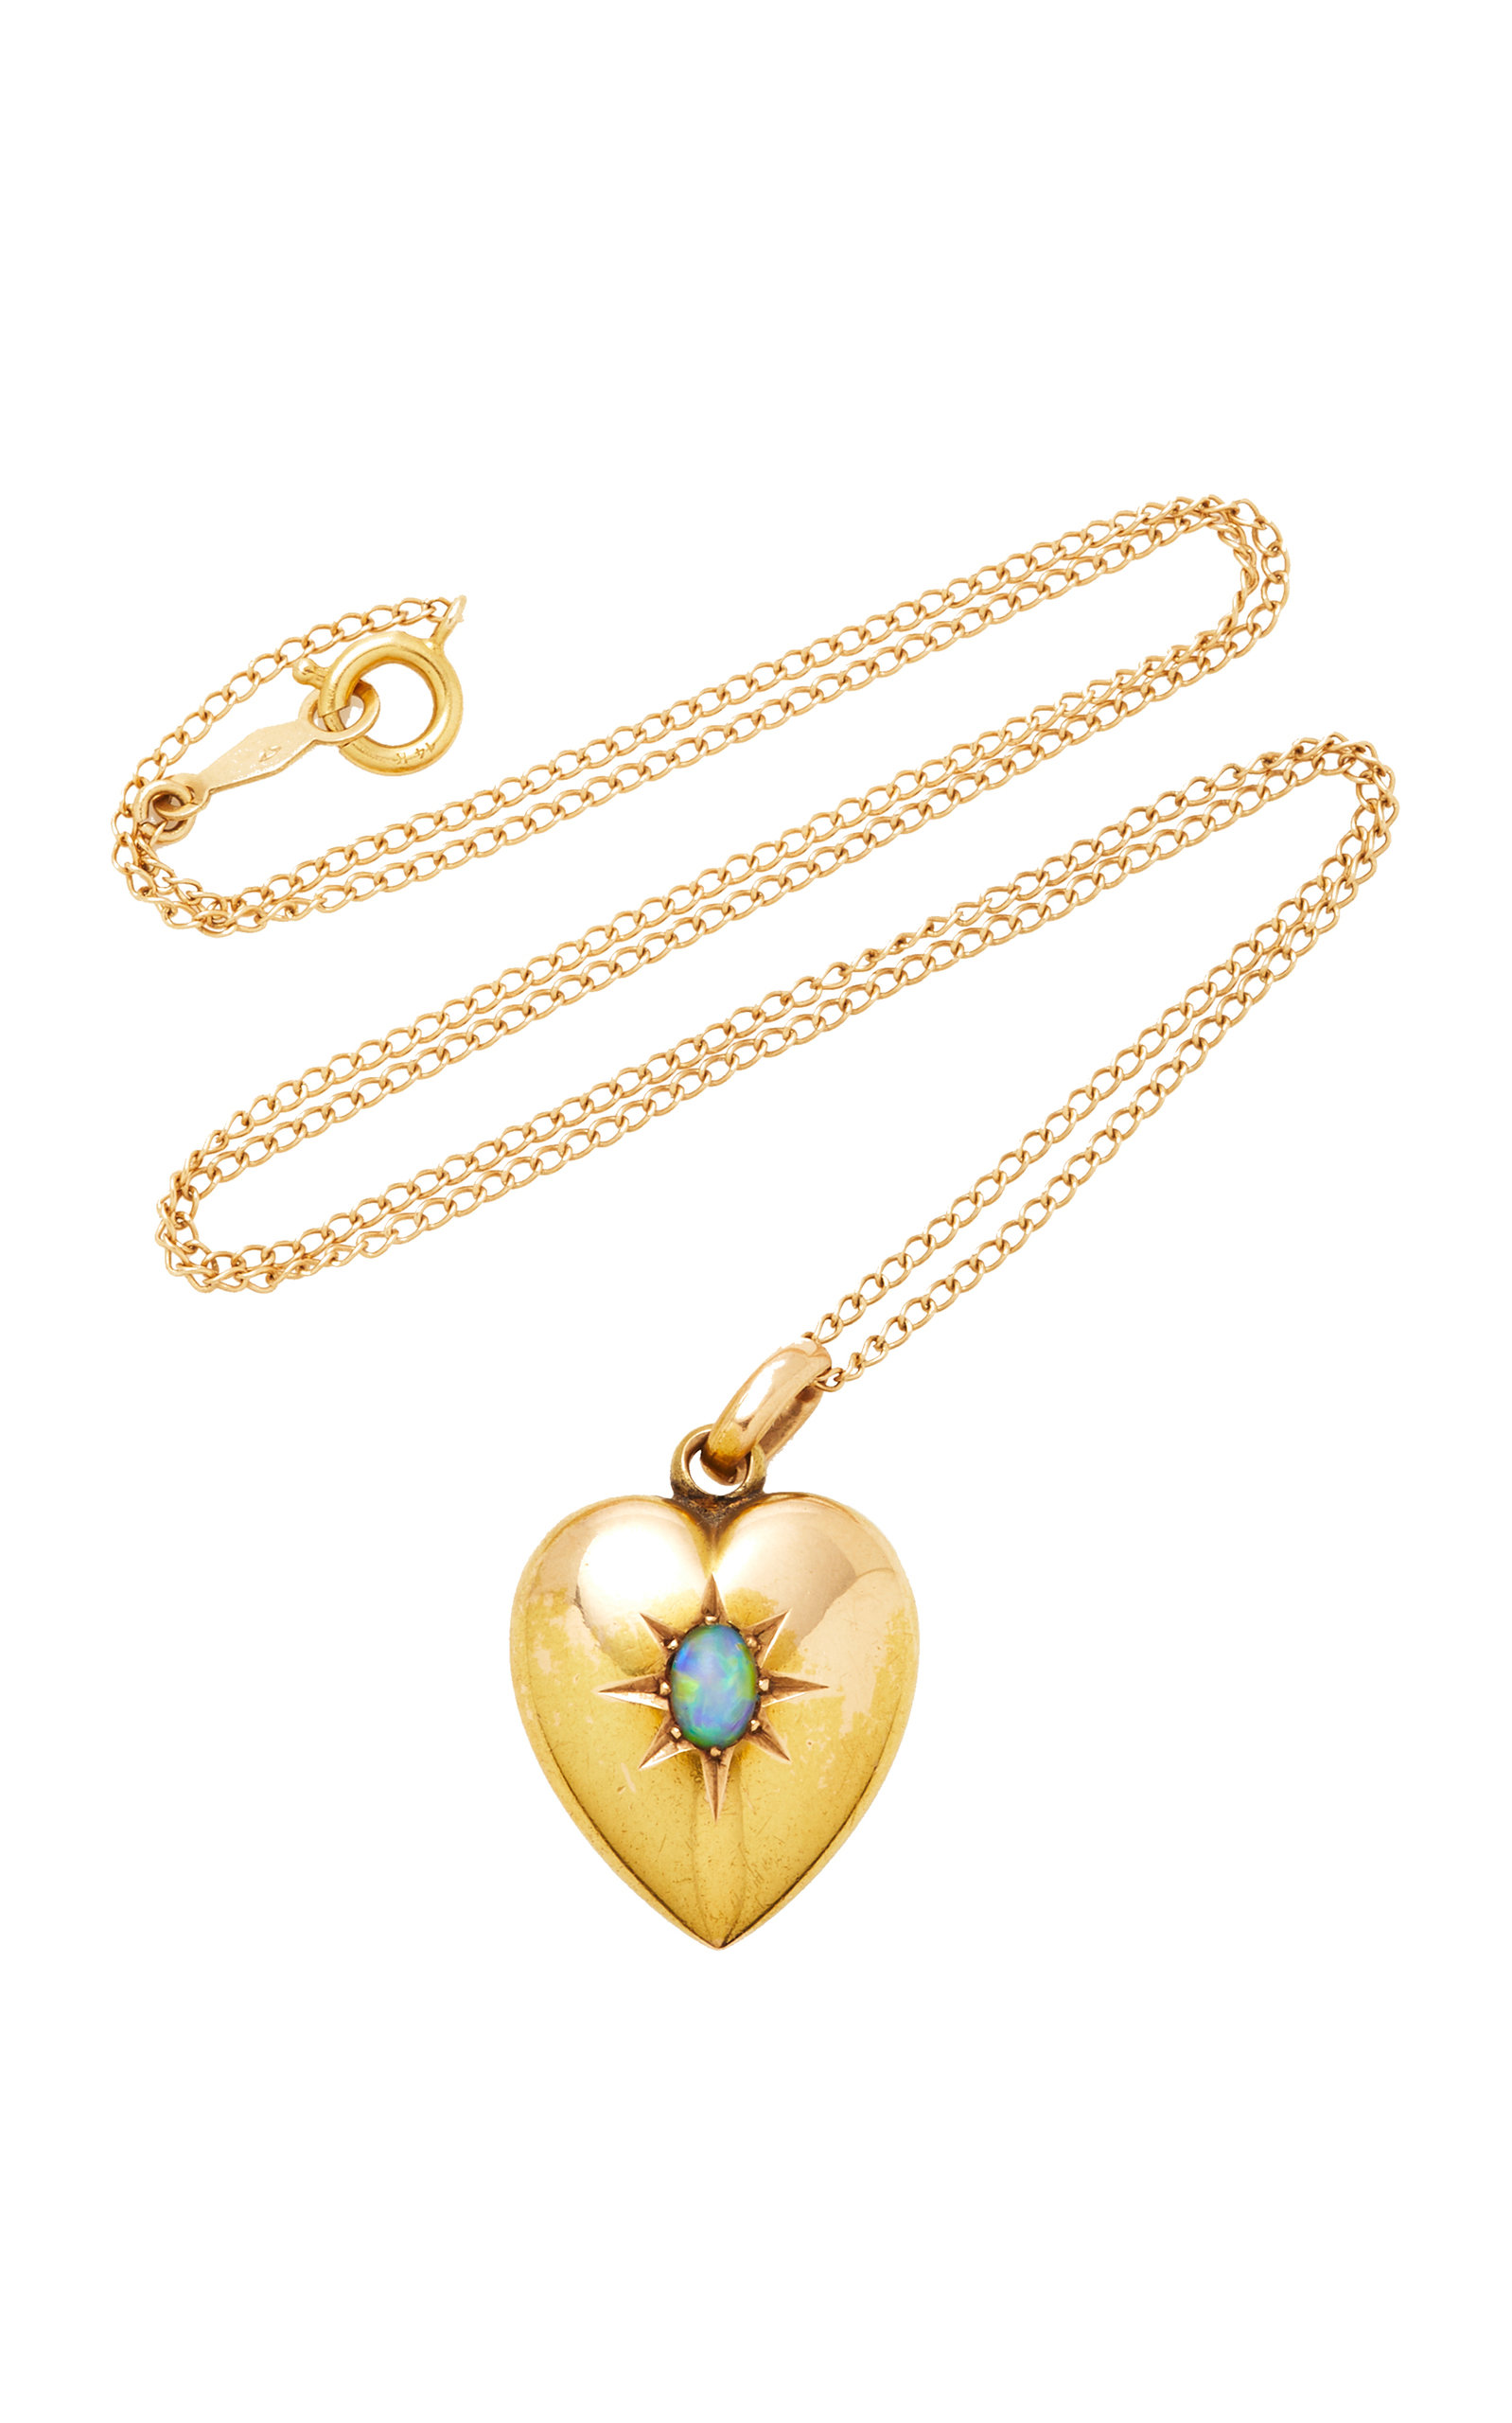 VELA ONE-OF-A-KIND EDWARDAIN OPAL HEART NECKLACE